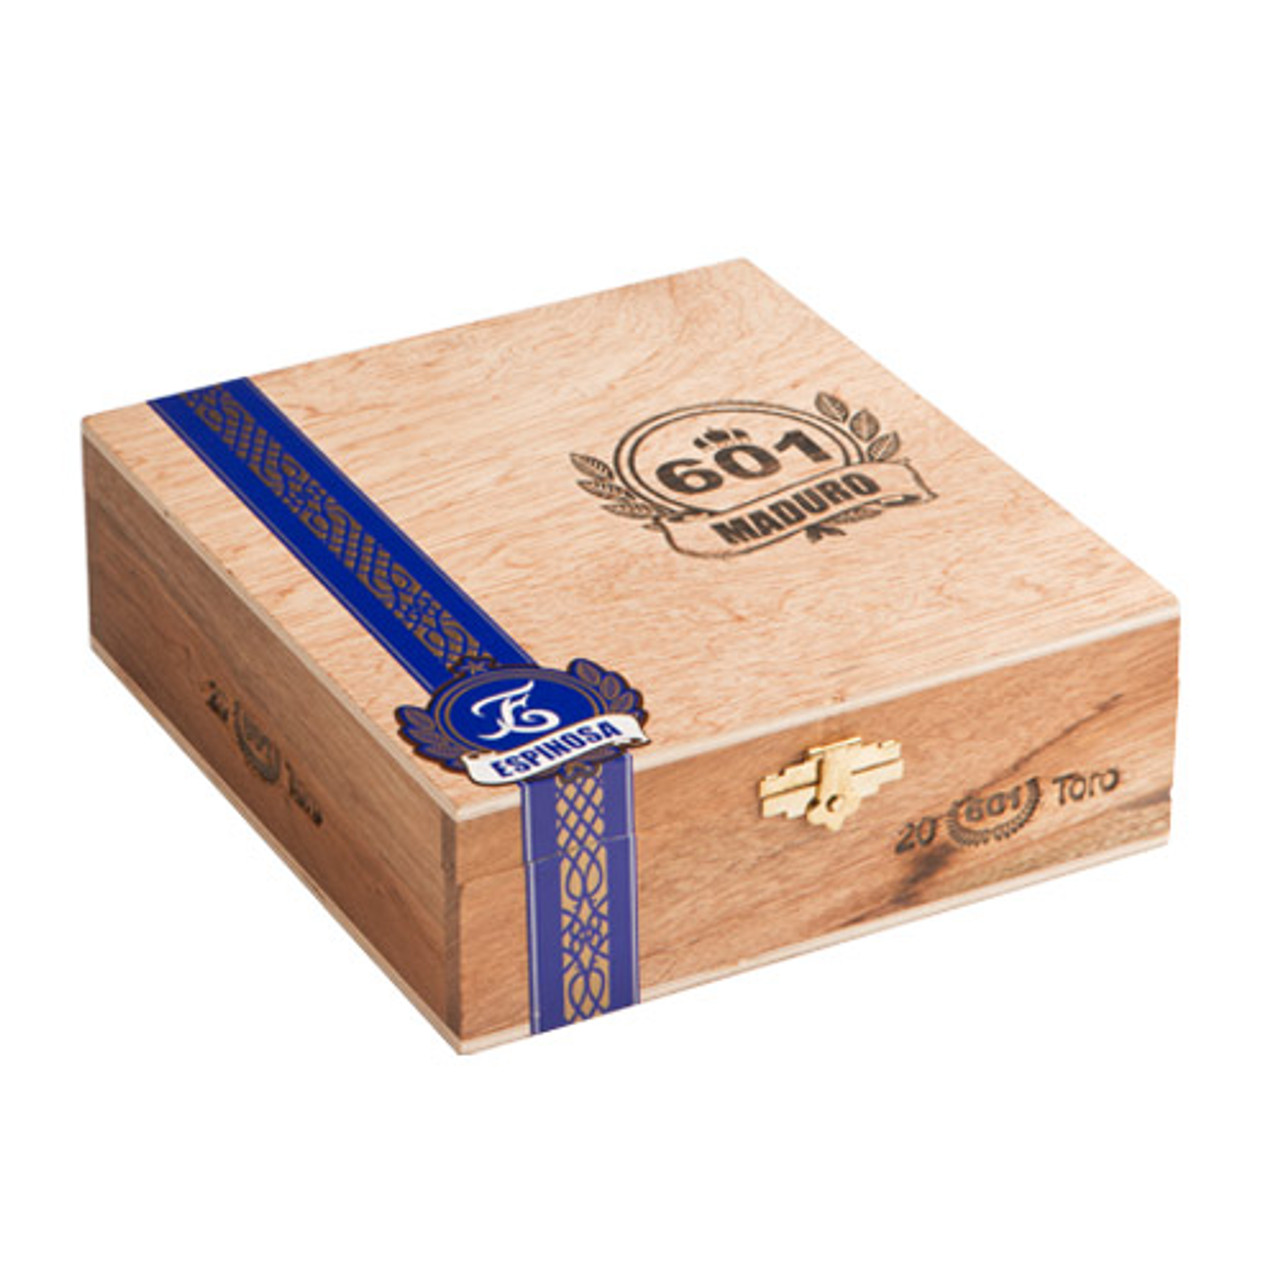 601 Blue Label Maduro Toro - 6.25 x 54 Cigars (Box of 20)